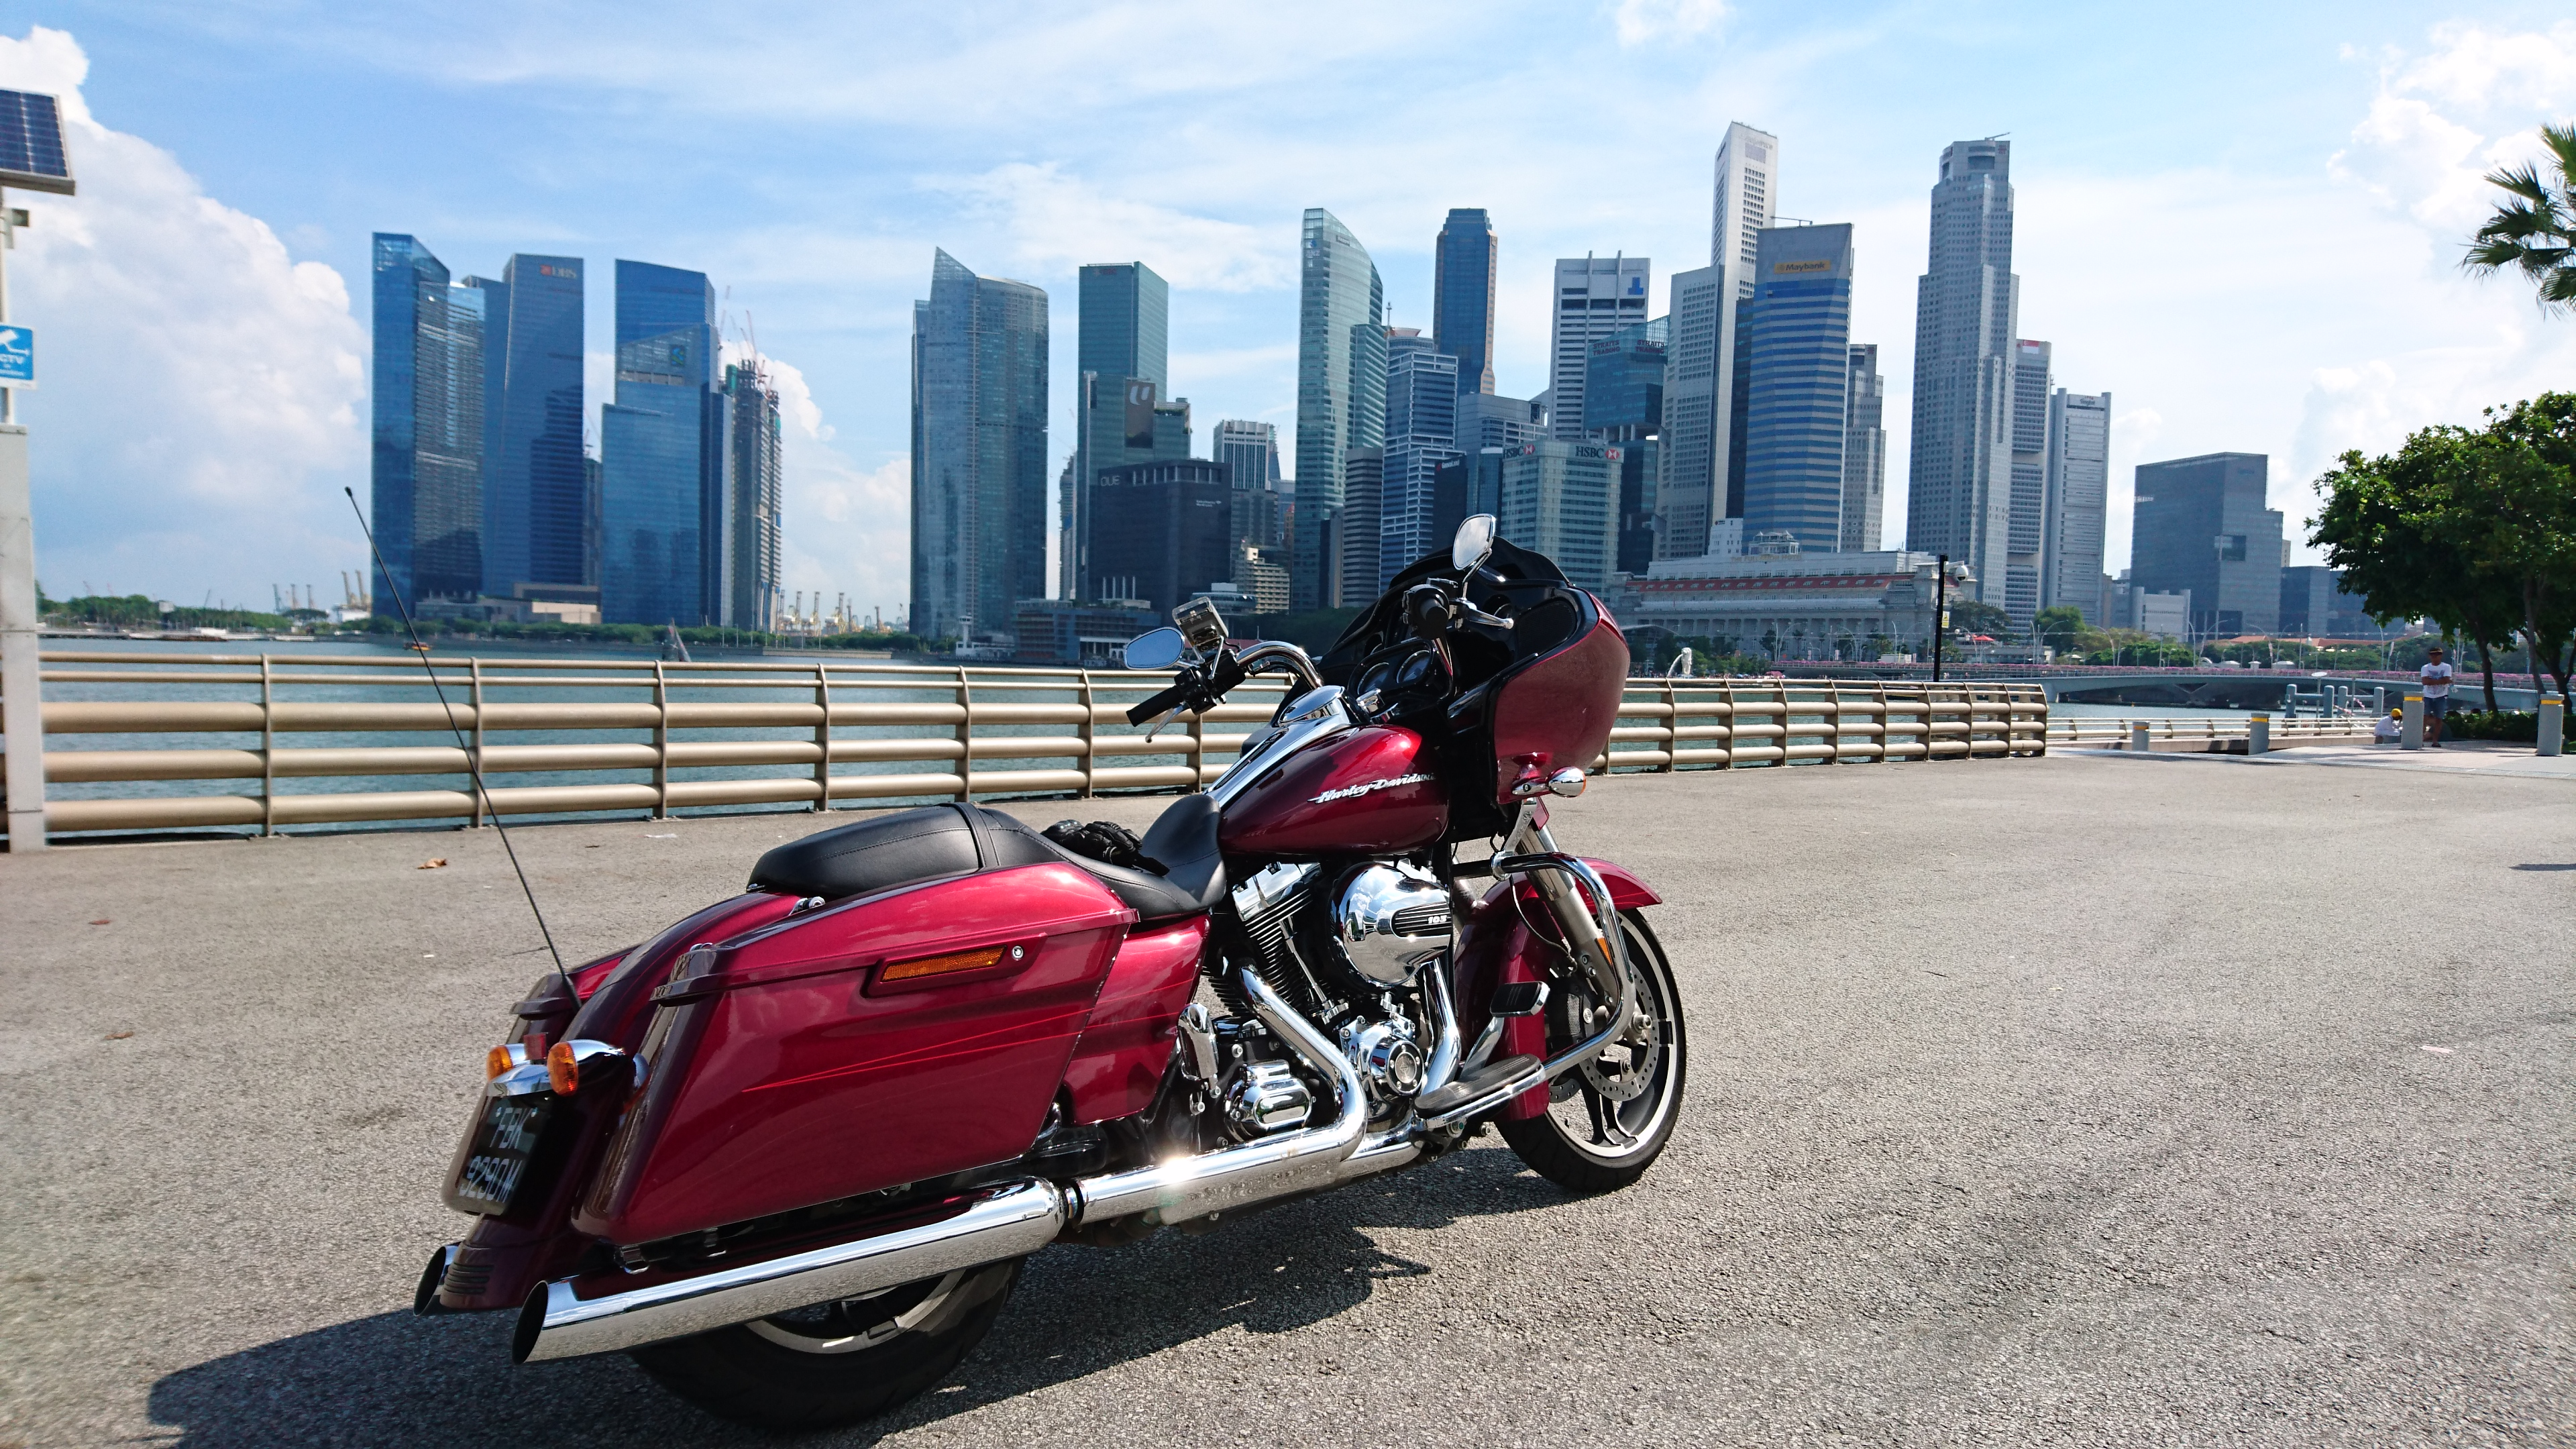 Harley Davidson Road Glide Special in Velocity Red